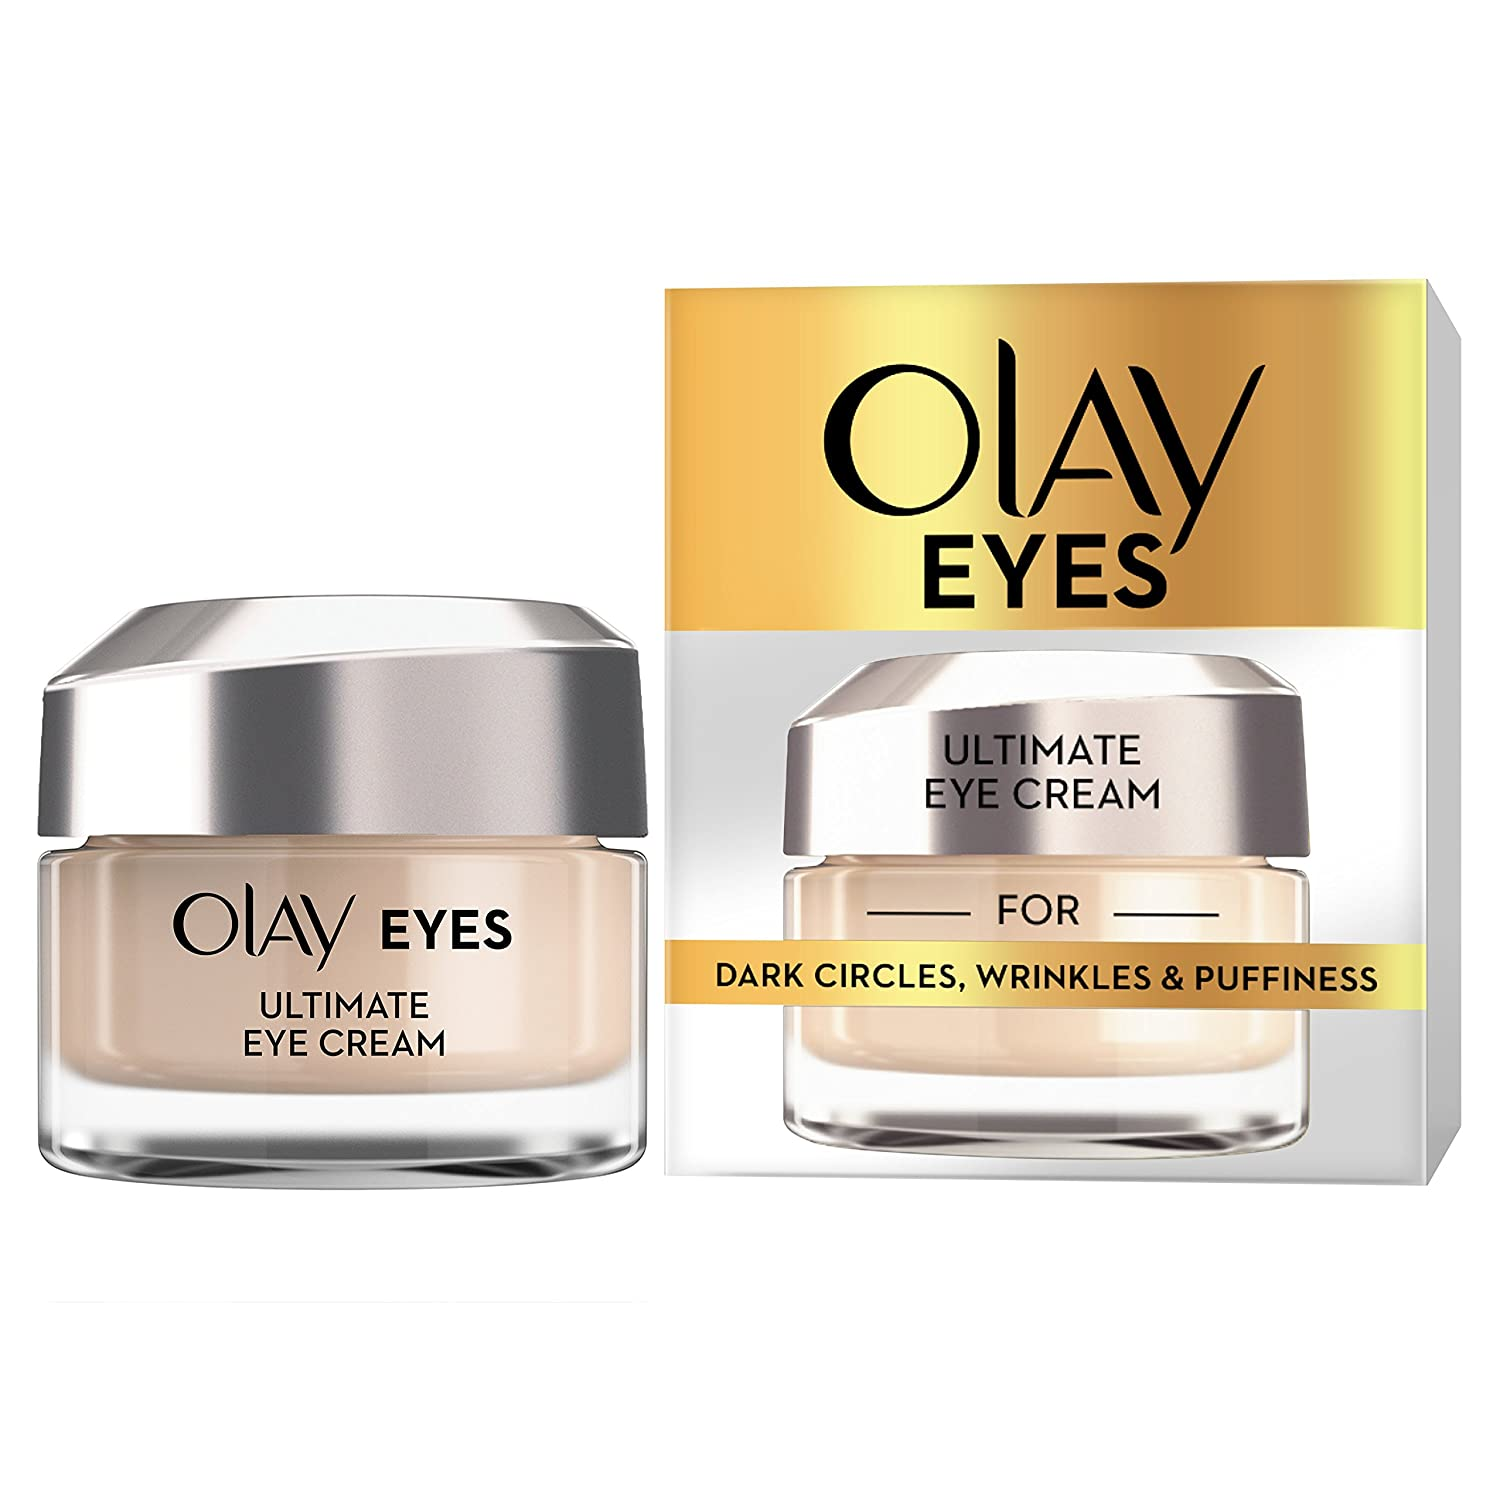 OLAY EYE Collection Ultimate Cream 15ml Procter & Gamble 81615228